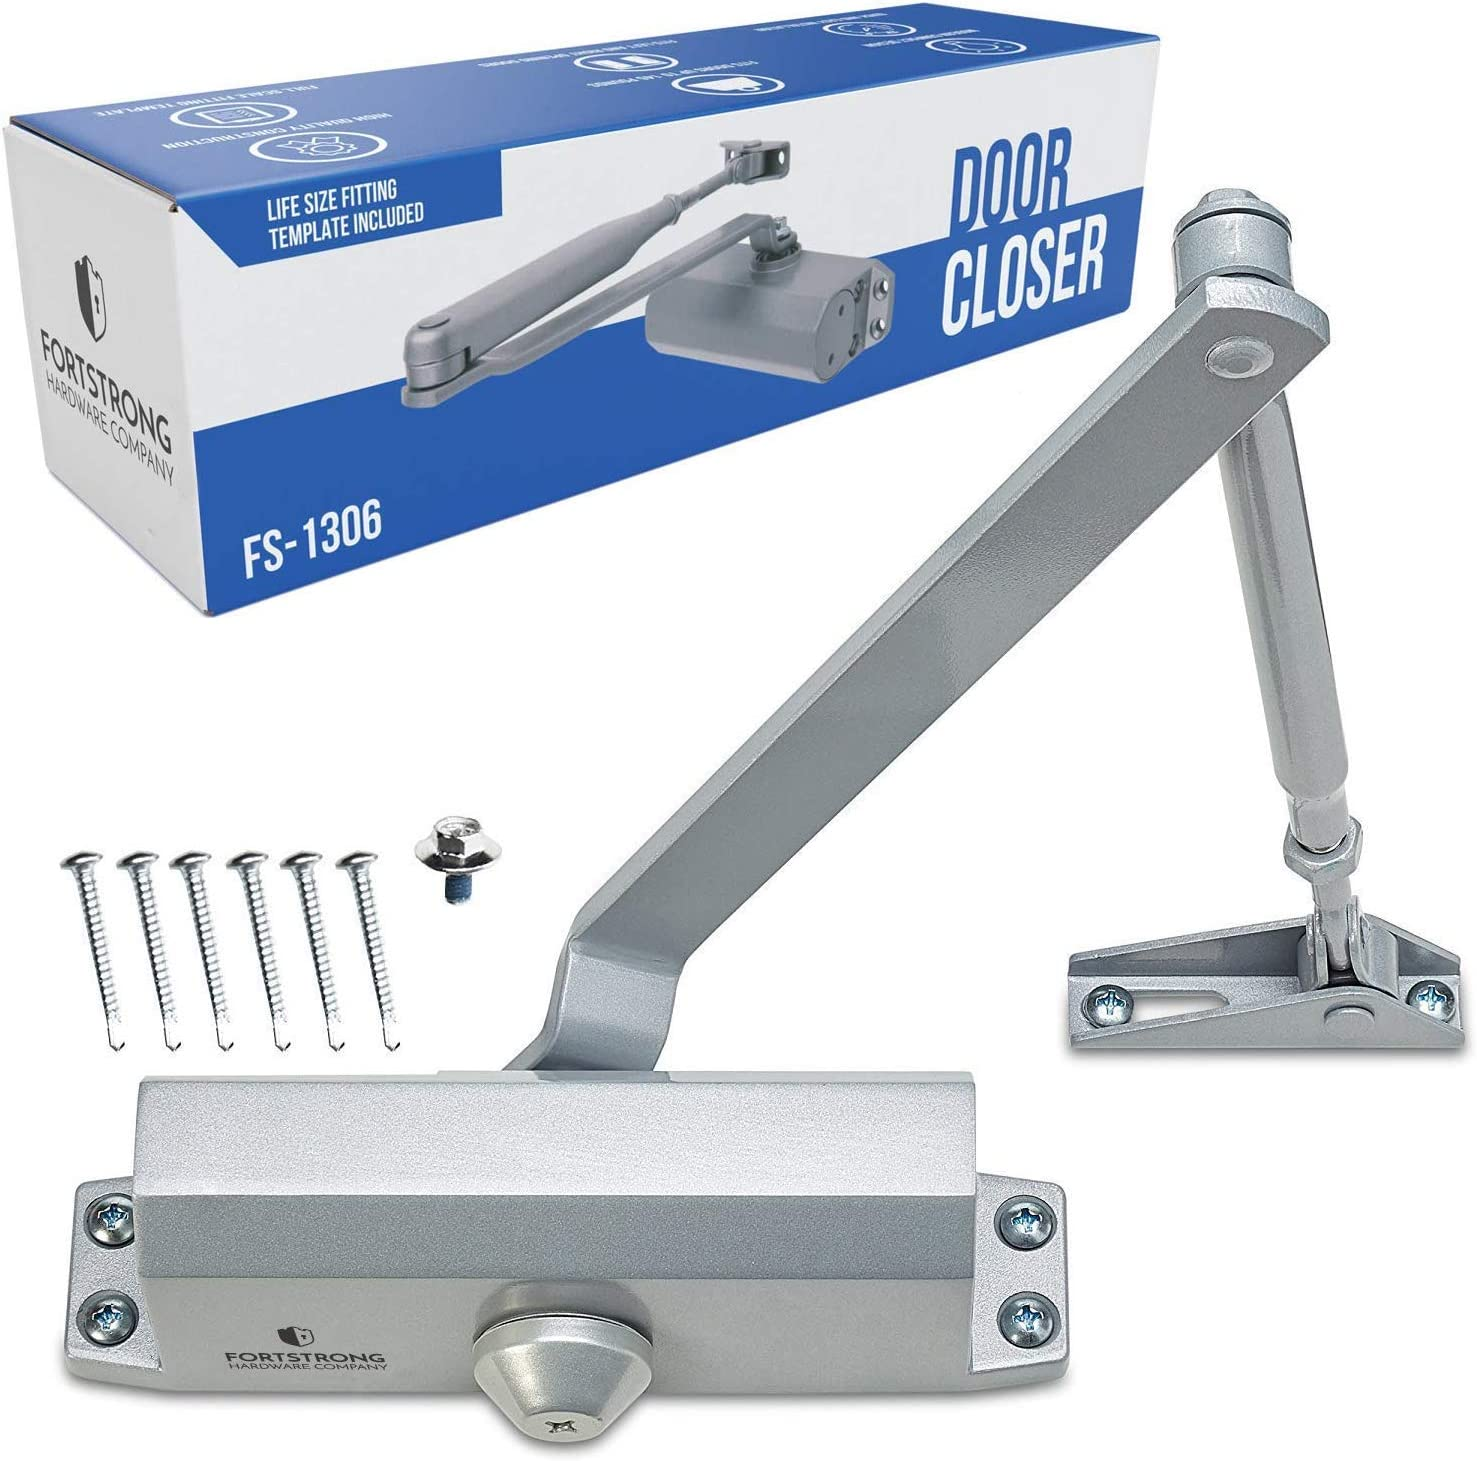 Surface Mounted Door Closer Fire Tested Spring Loaded Auto Adjustable Closing